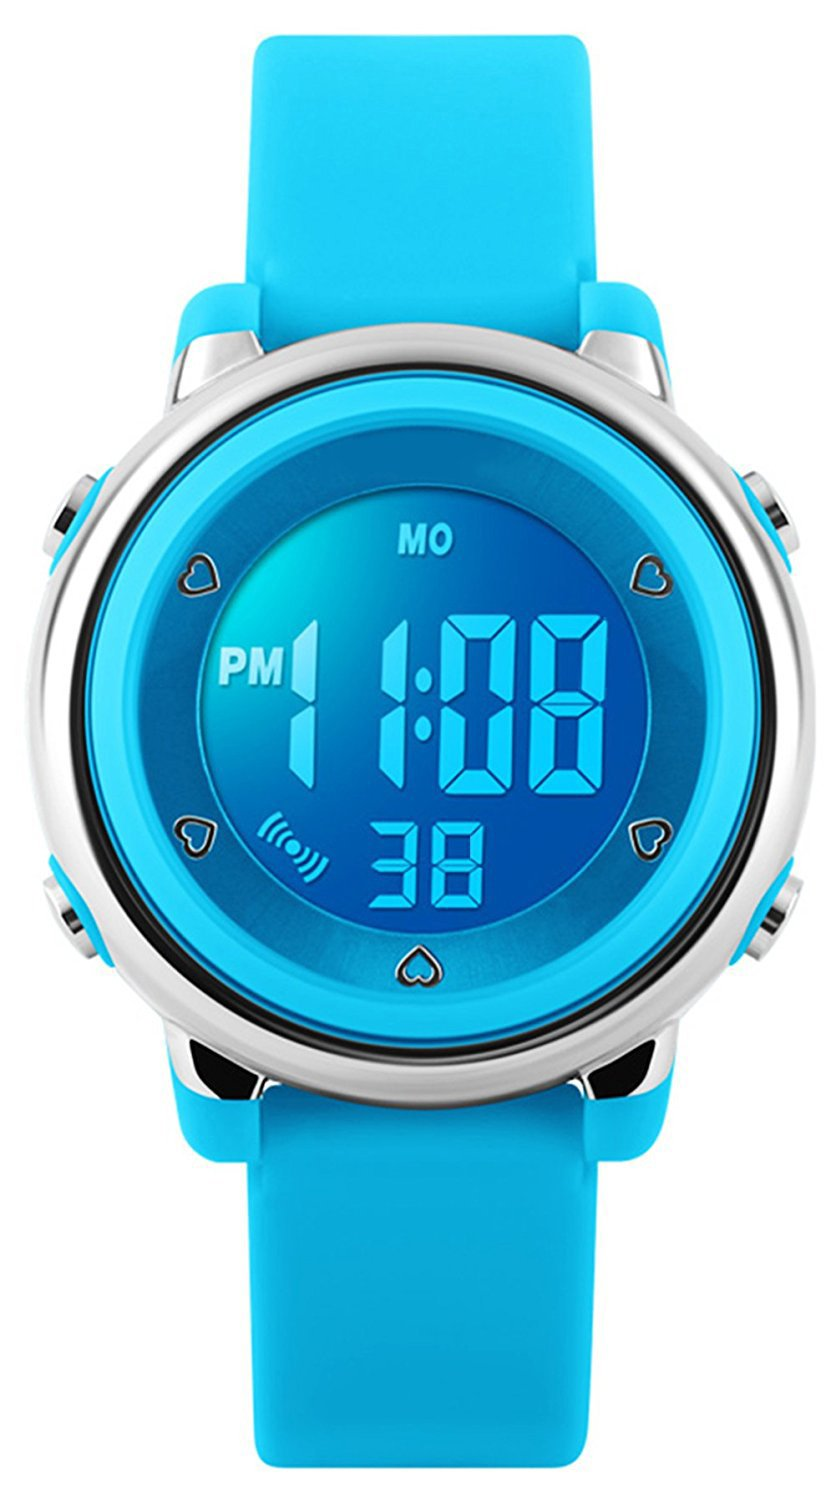 RSVOM Digital Watches for Boys Girls, Kids 5ATM Waterproof Sport Watch with Alarm/Date/Chronograph/7 LED Displays, Childrens Outdoors Sports Wrist Watches for Little Teenagers Boys